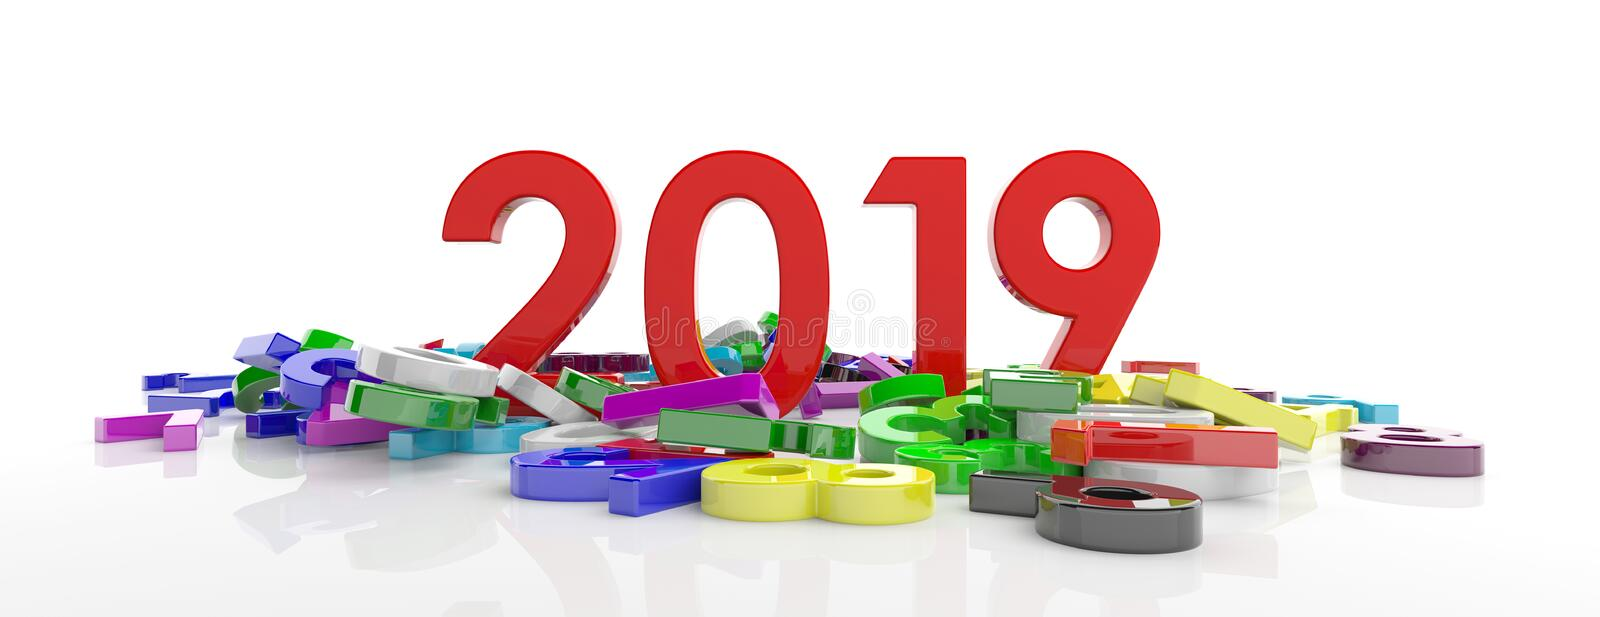 2019 New year. Red 2019 figures and colorful numbers heap on white background, banner. 3d illustration stock illustration